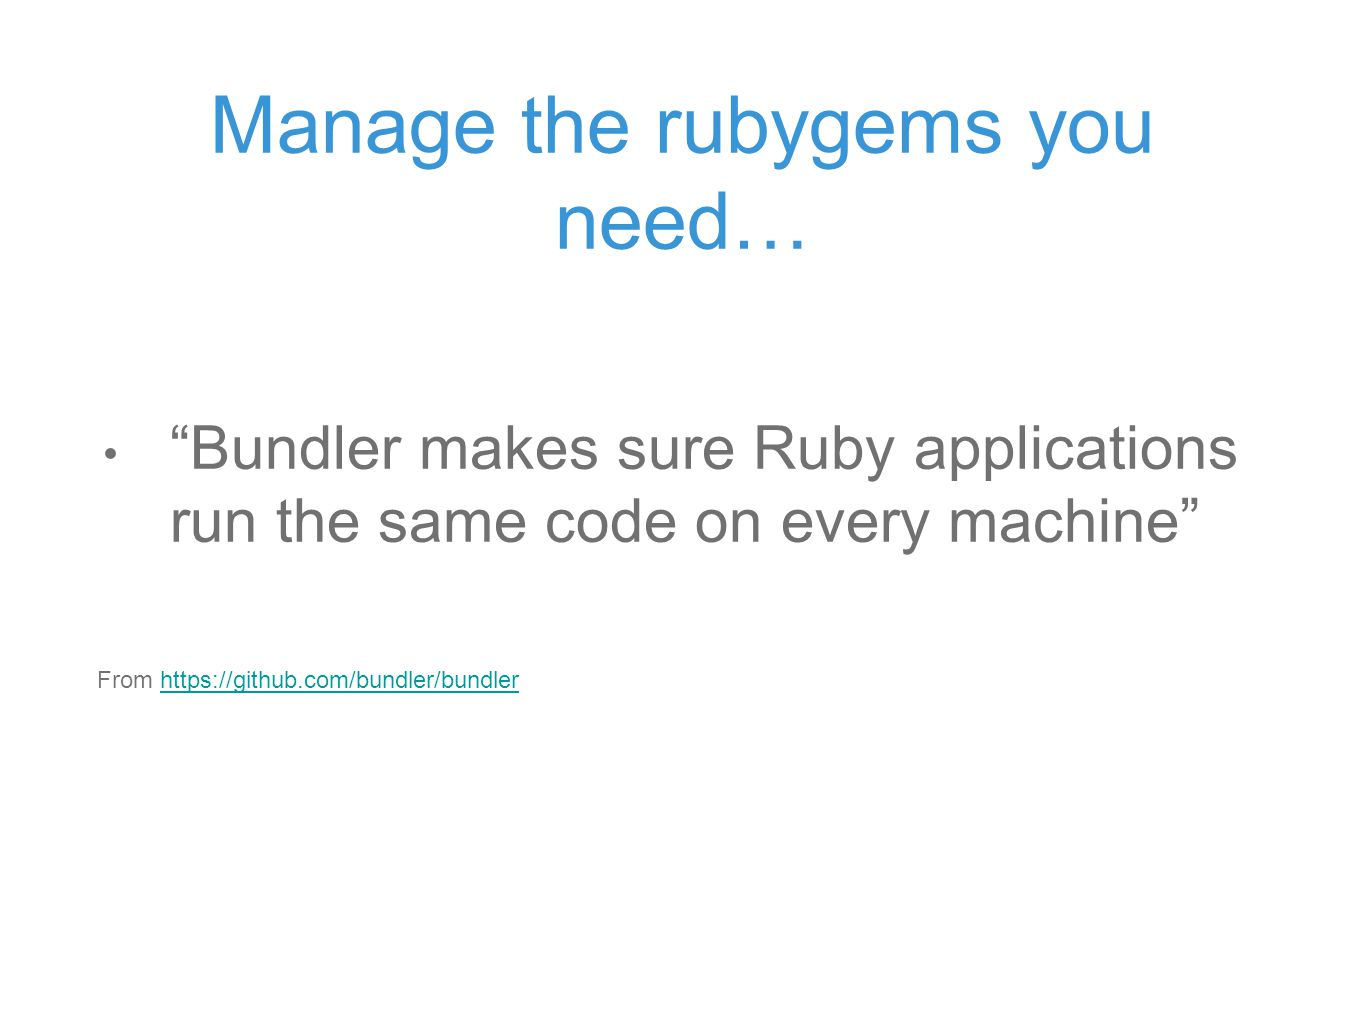 Manage the rubygems you need… Bundler makes sure Ruby applications run the same code on every machine From https://github.com/bundler/bundlerhttps://github.com/bundler/bundler